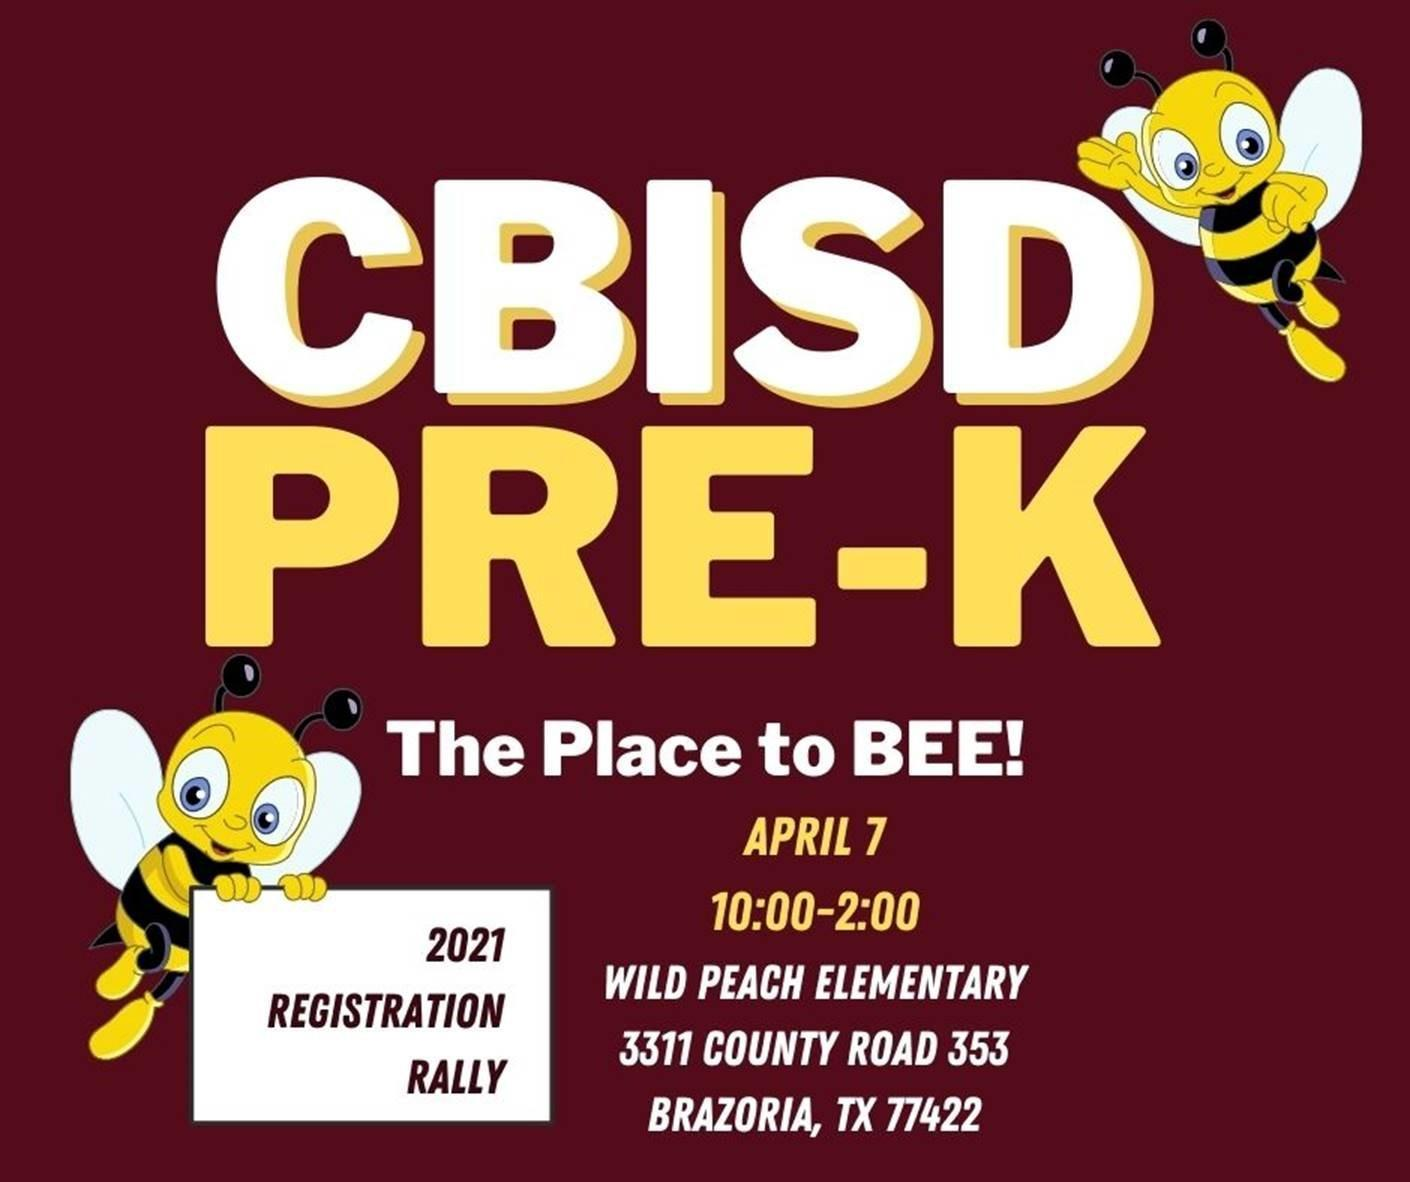 CBISD Pre-K The Place to BEE